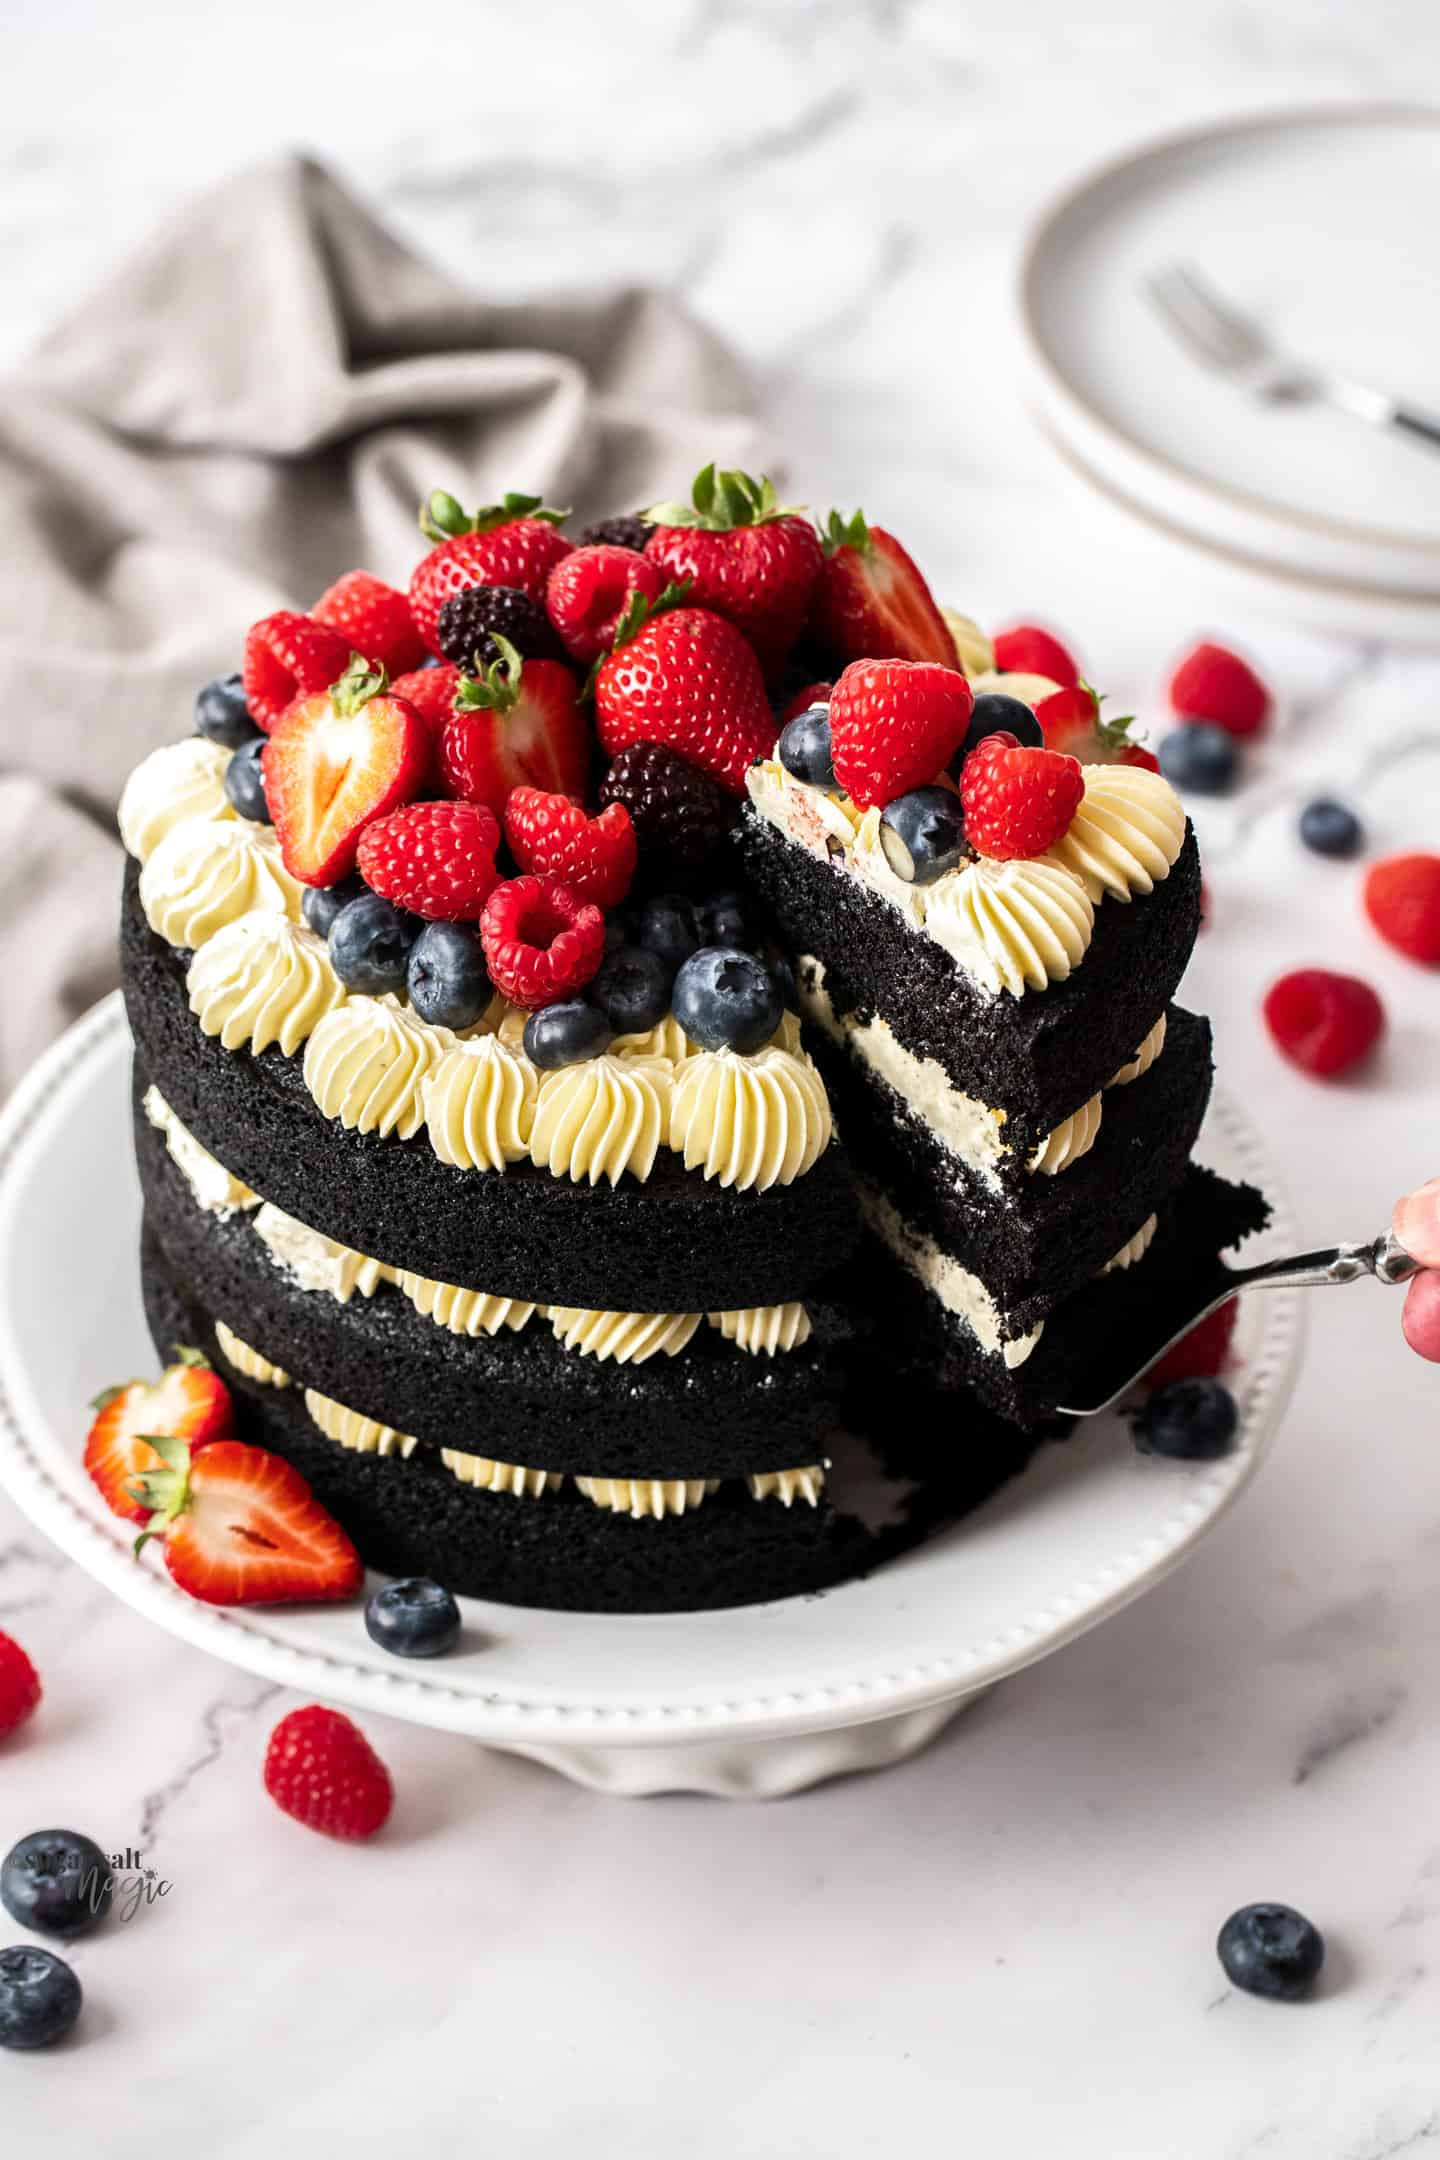 Top down view of a 3 tier black velvet cake topped with fresh berries.